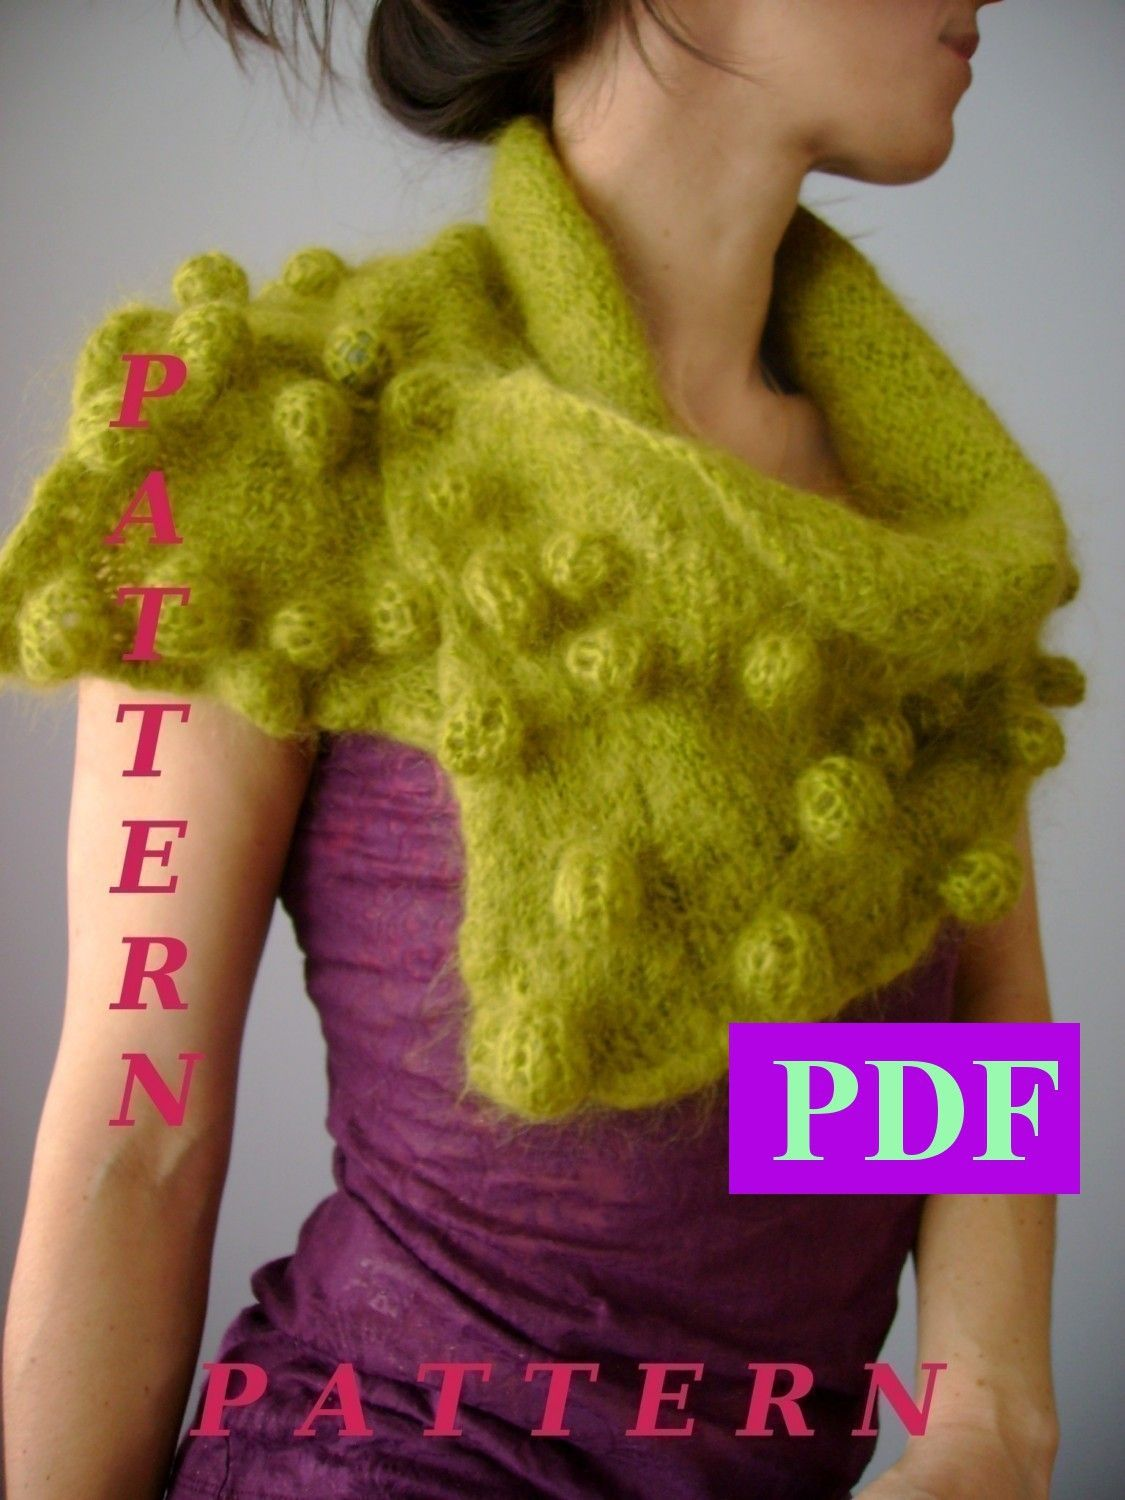 Scarf knitting pattern shibori knitted scarf felted scarf pdf knitting pattern ooak shibori style unique knitted felted bubbled bobble neck warmer cowl bankloansurffo Choice Image